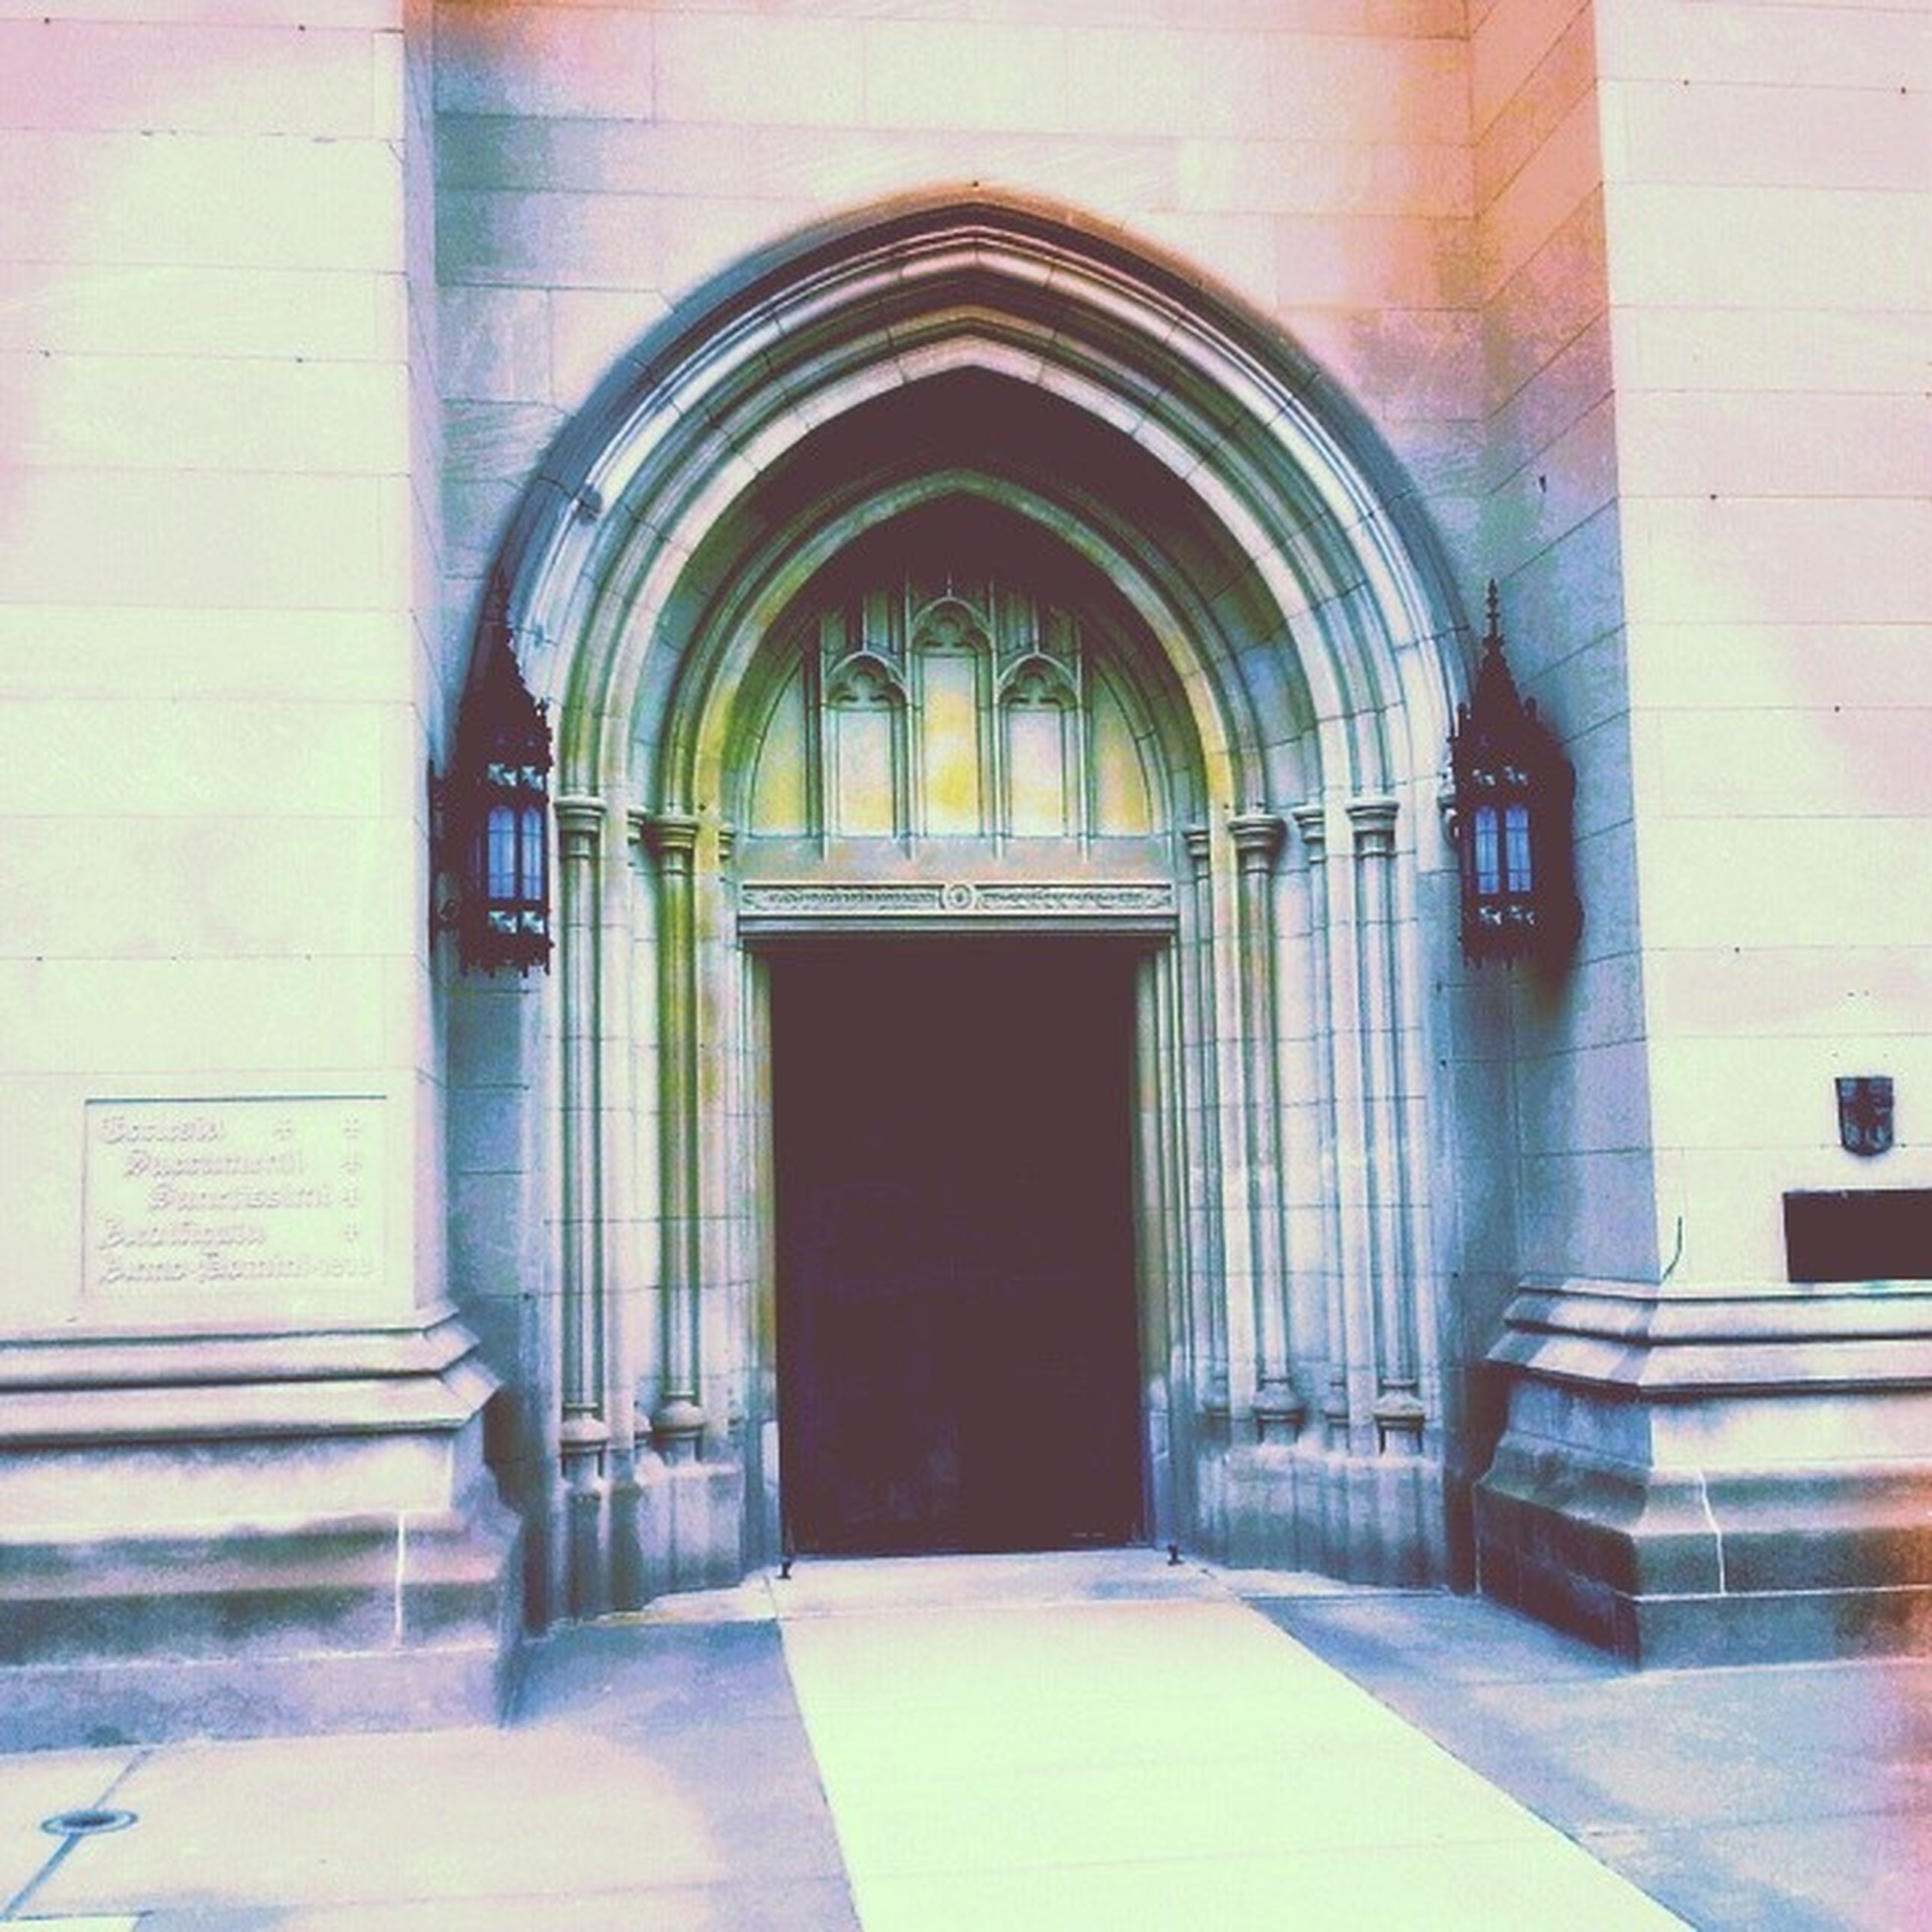 architecture, door, built structure, entrance, arch, building exterior, closed, doorway, window, house, indoors, open, day, church, wood - material, no people, building, facade, wall, empty